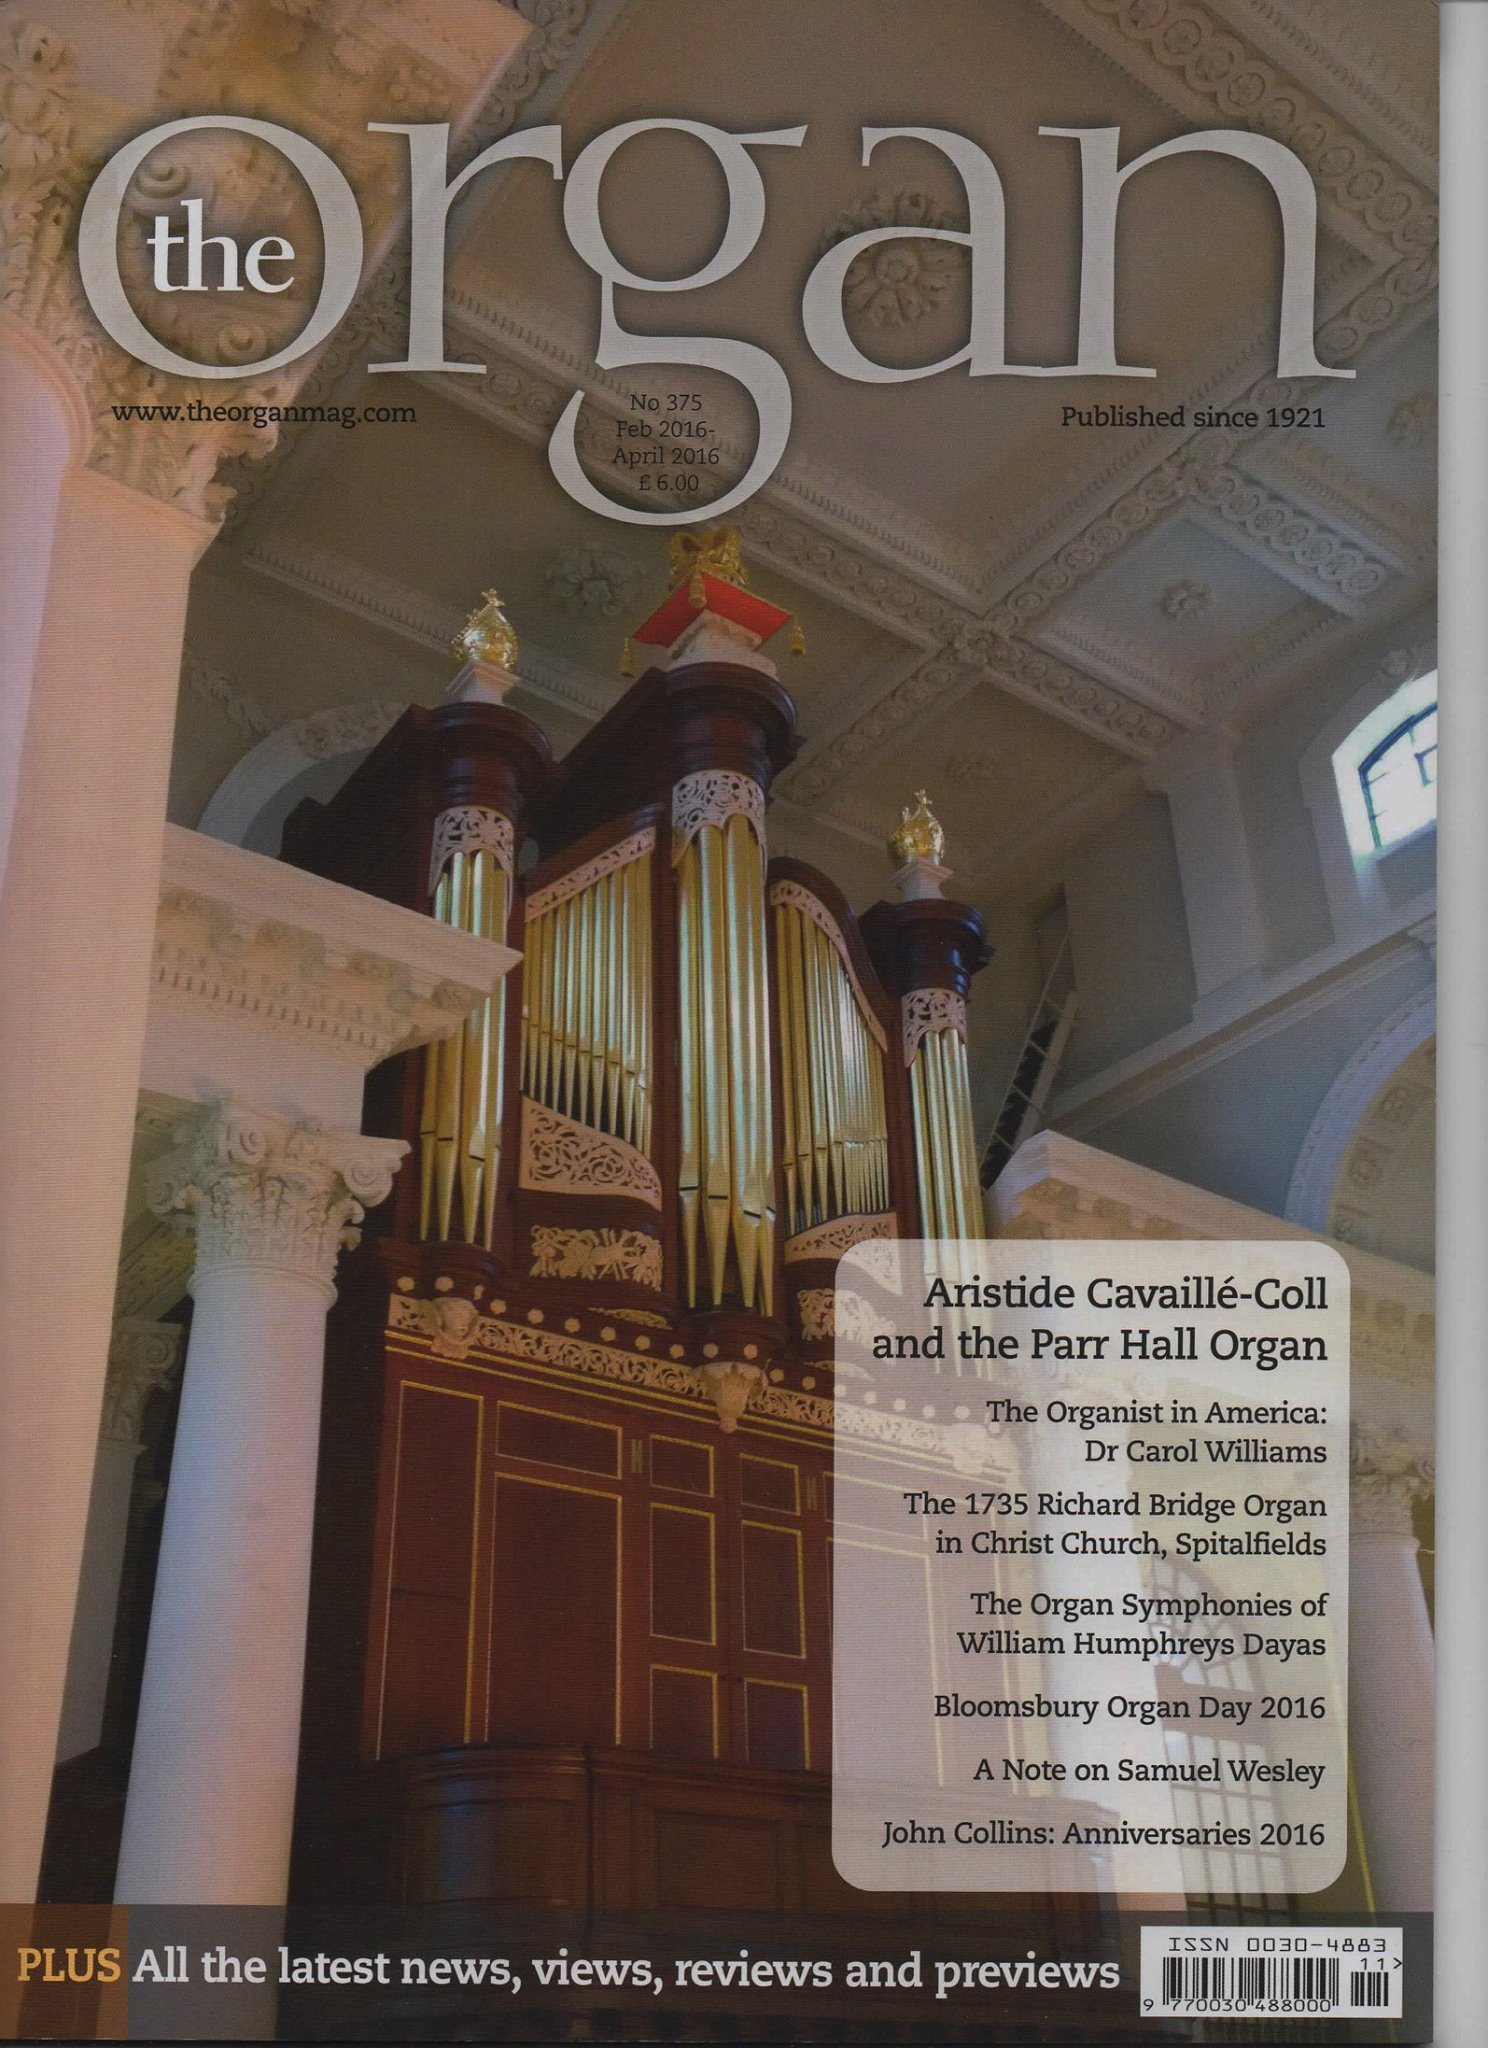 The Organ magazine